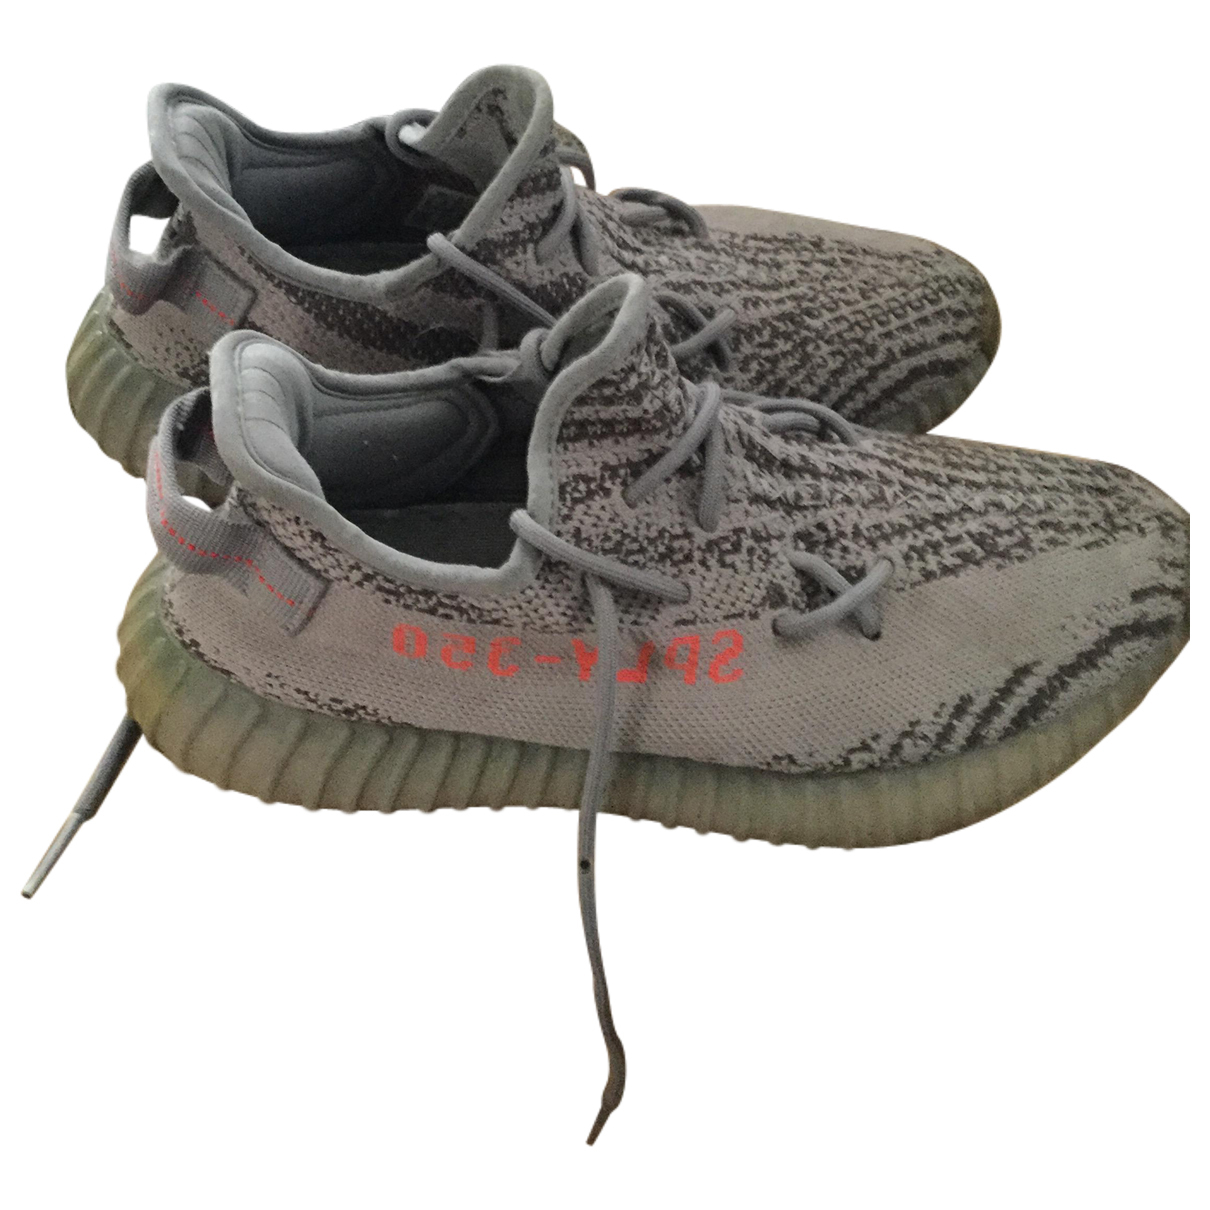 Yeezy X Adidas Boost 350 V2 Grey Cloth Trainers for Men 8 US